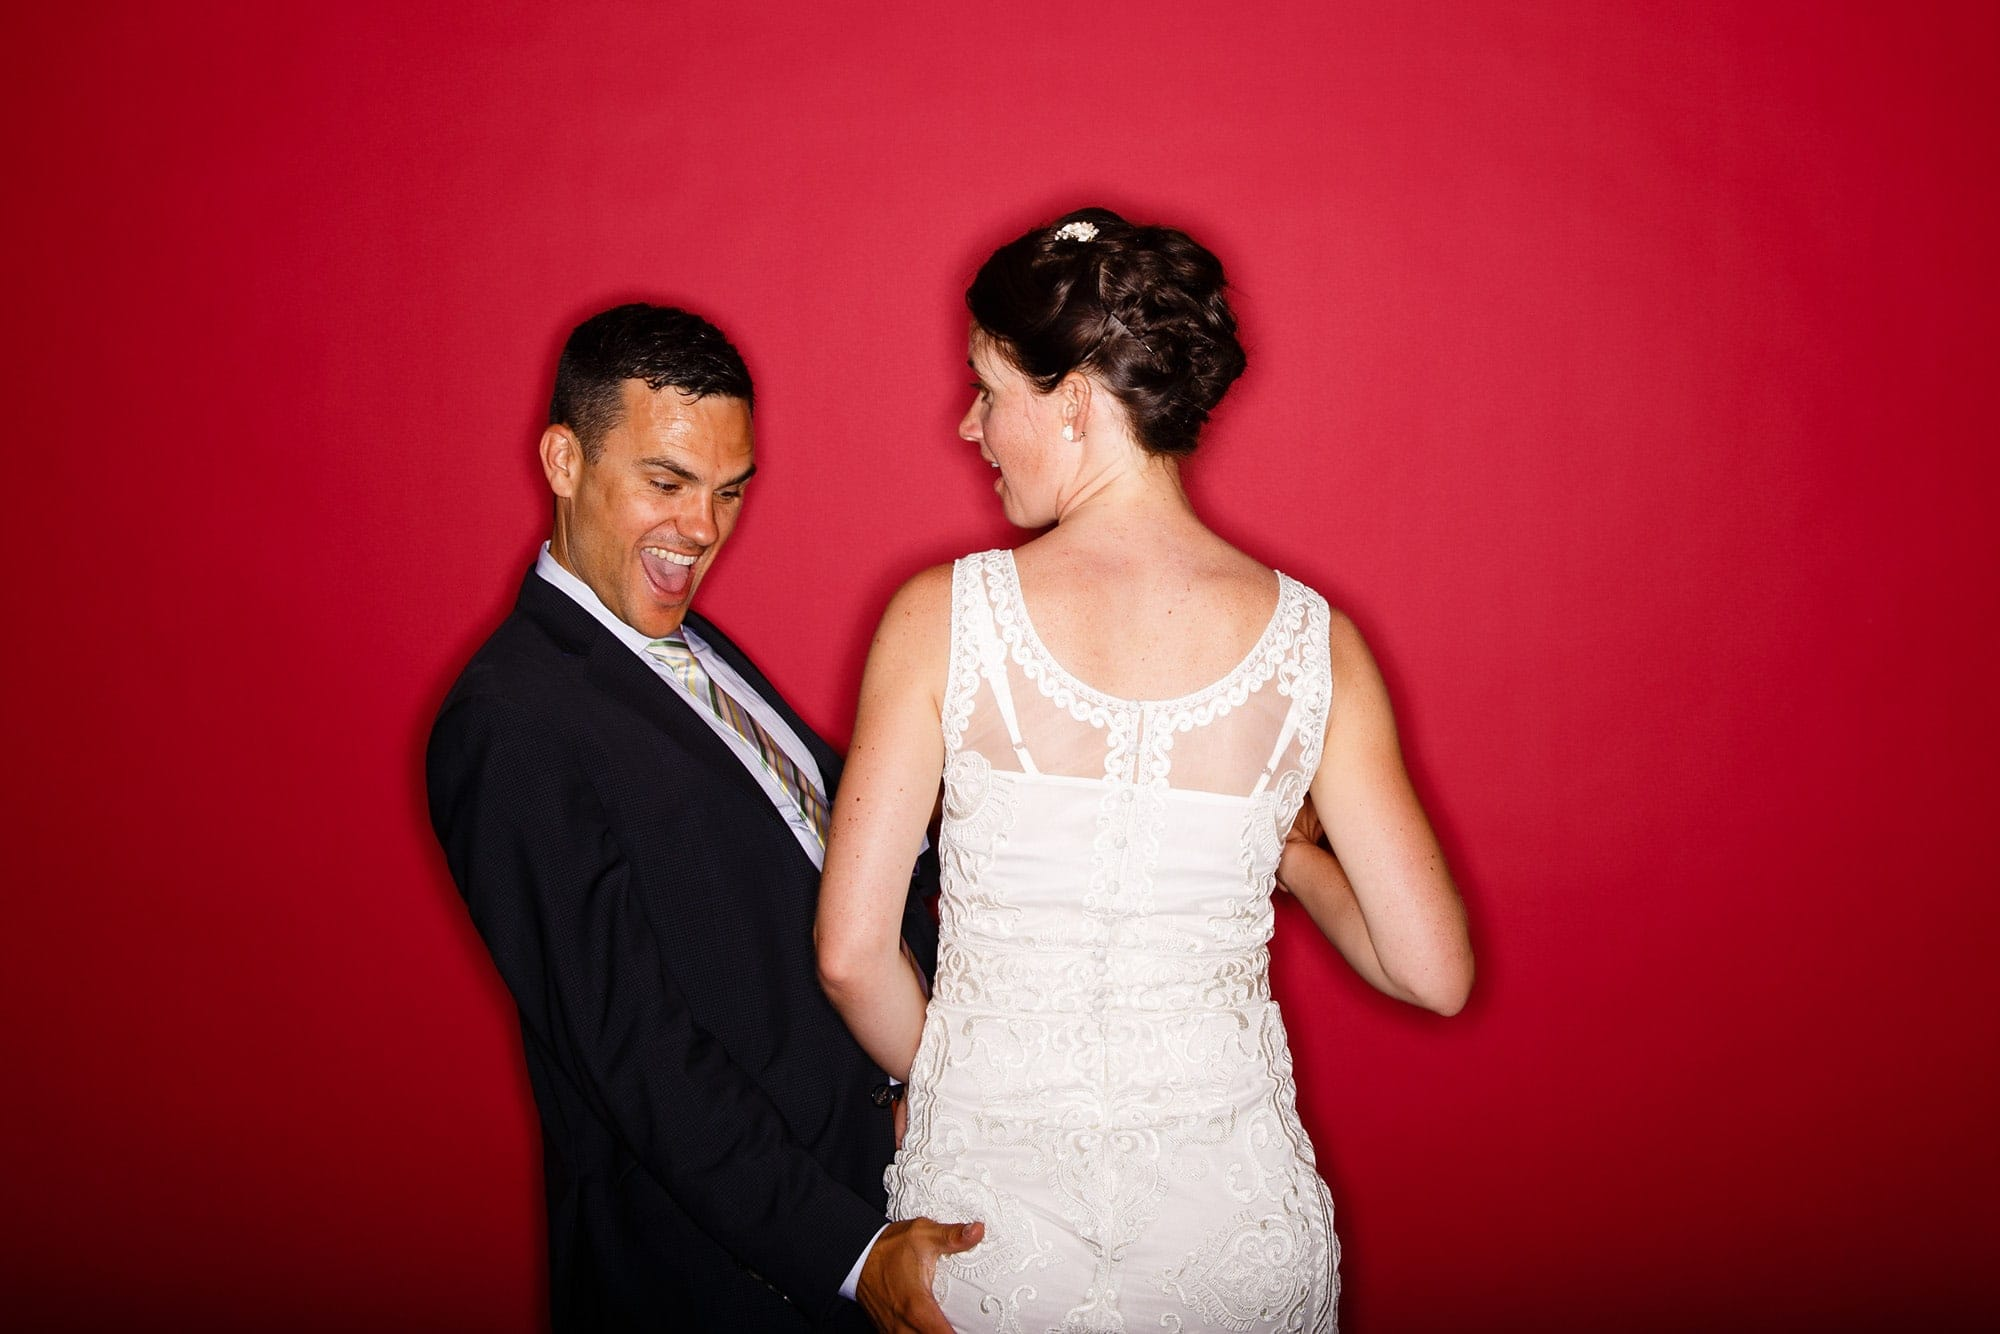 Denver Museum of Nature and Science wedding photobooth from Justin Edmonds Photography